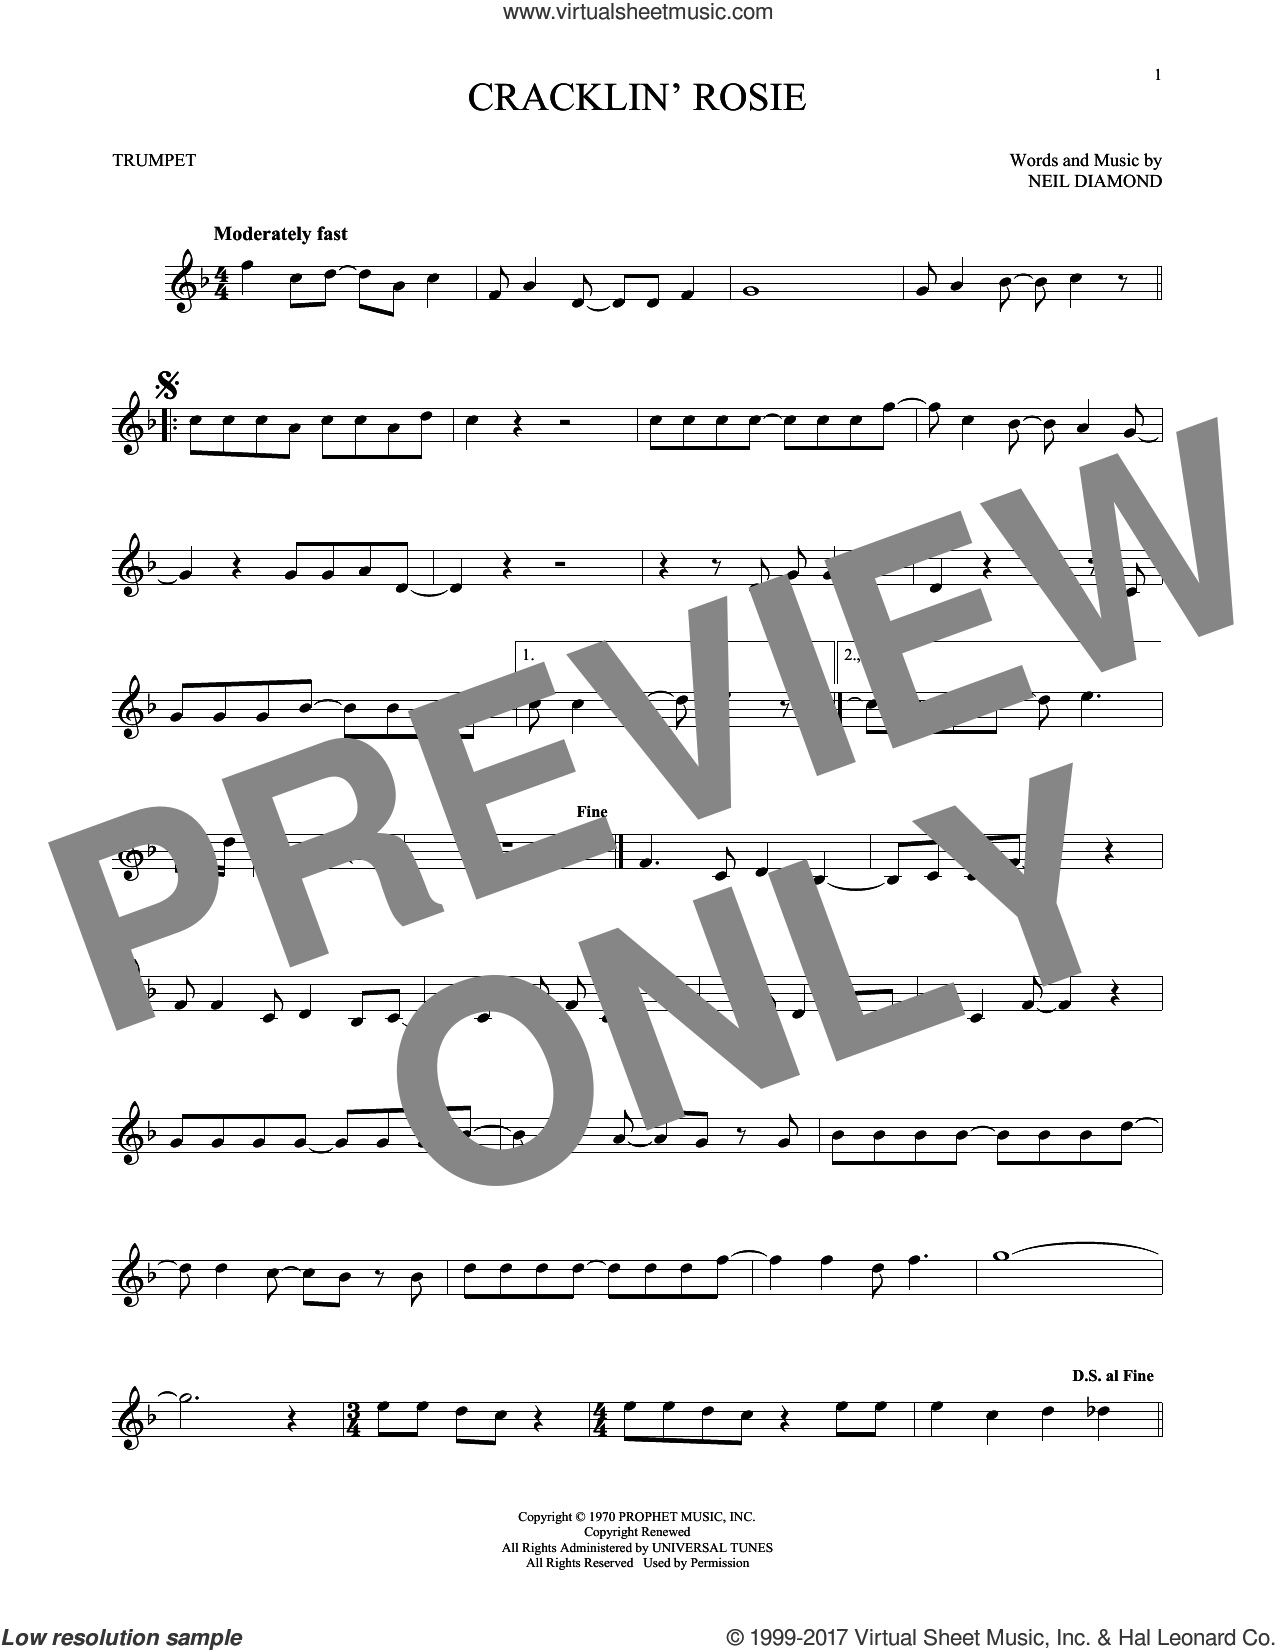 Cracklin' Rosie sheet music for trumpet solo by Neil Diamond, intermediate skill level